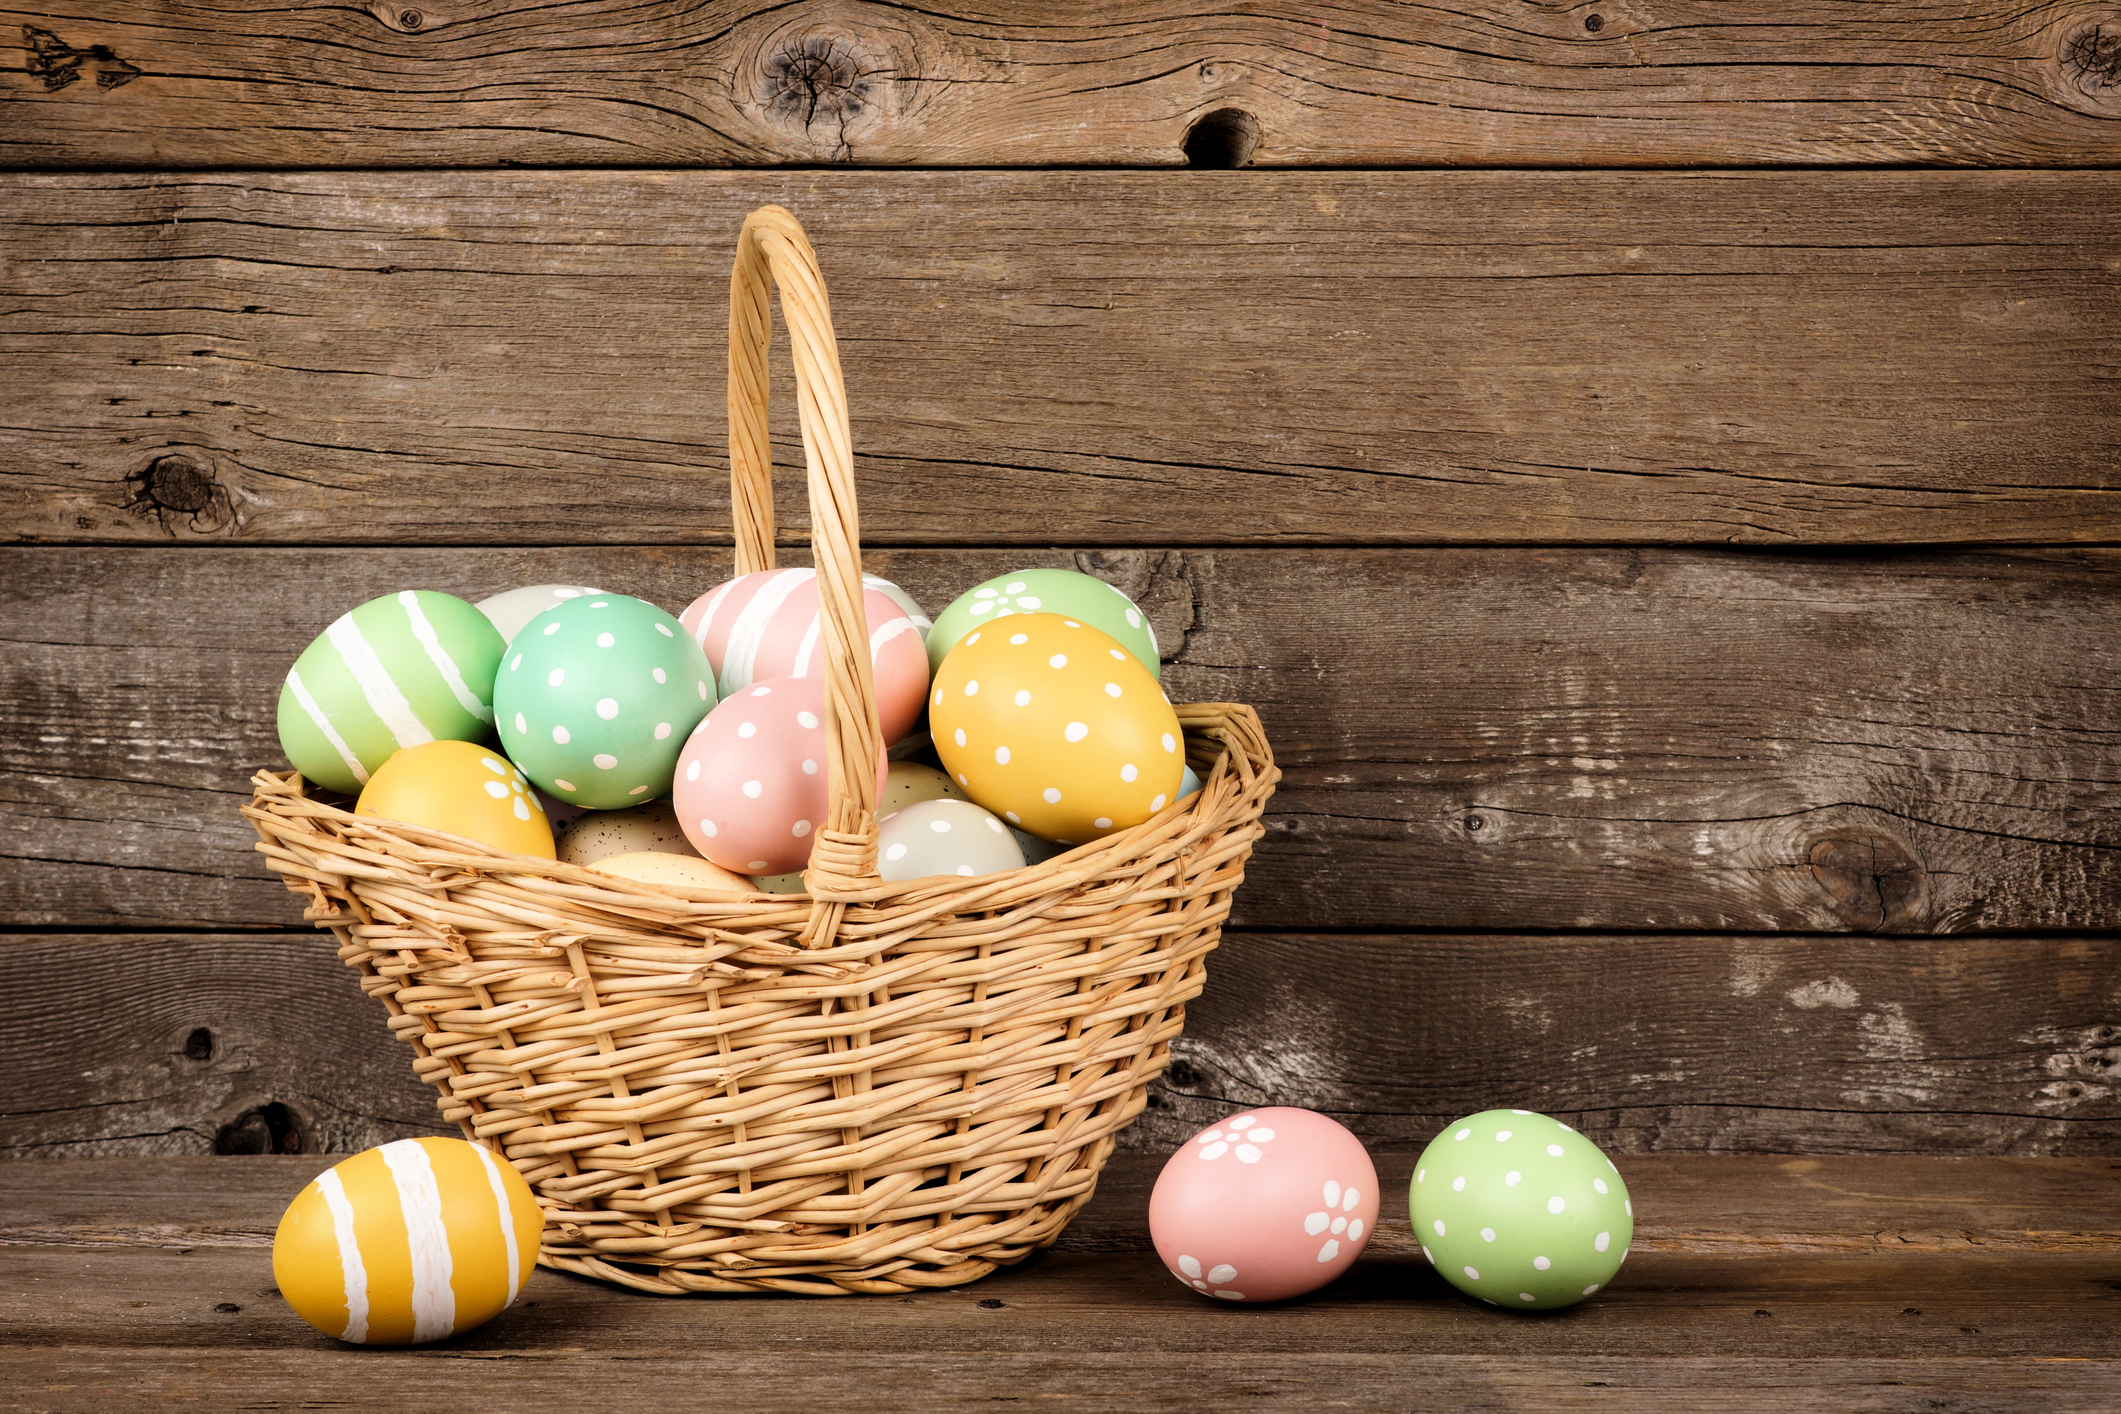 What Easter Baskets and Finances Have in Common